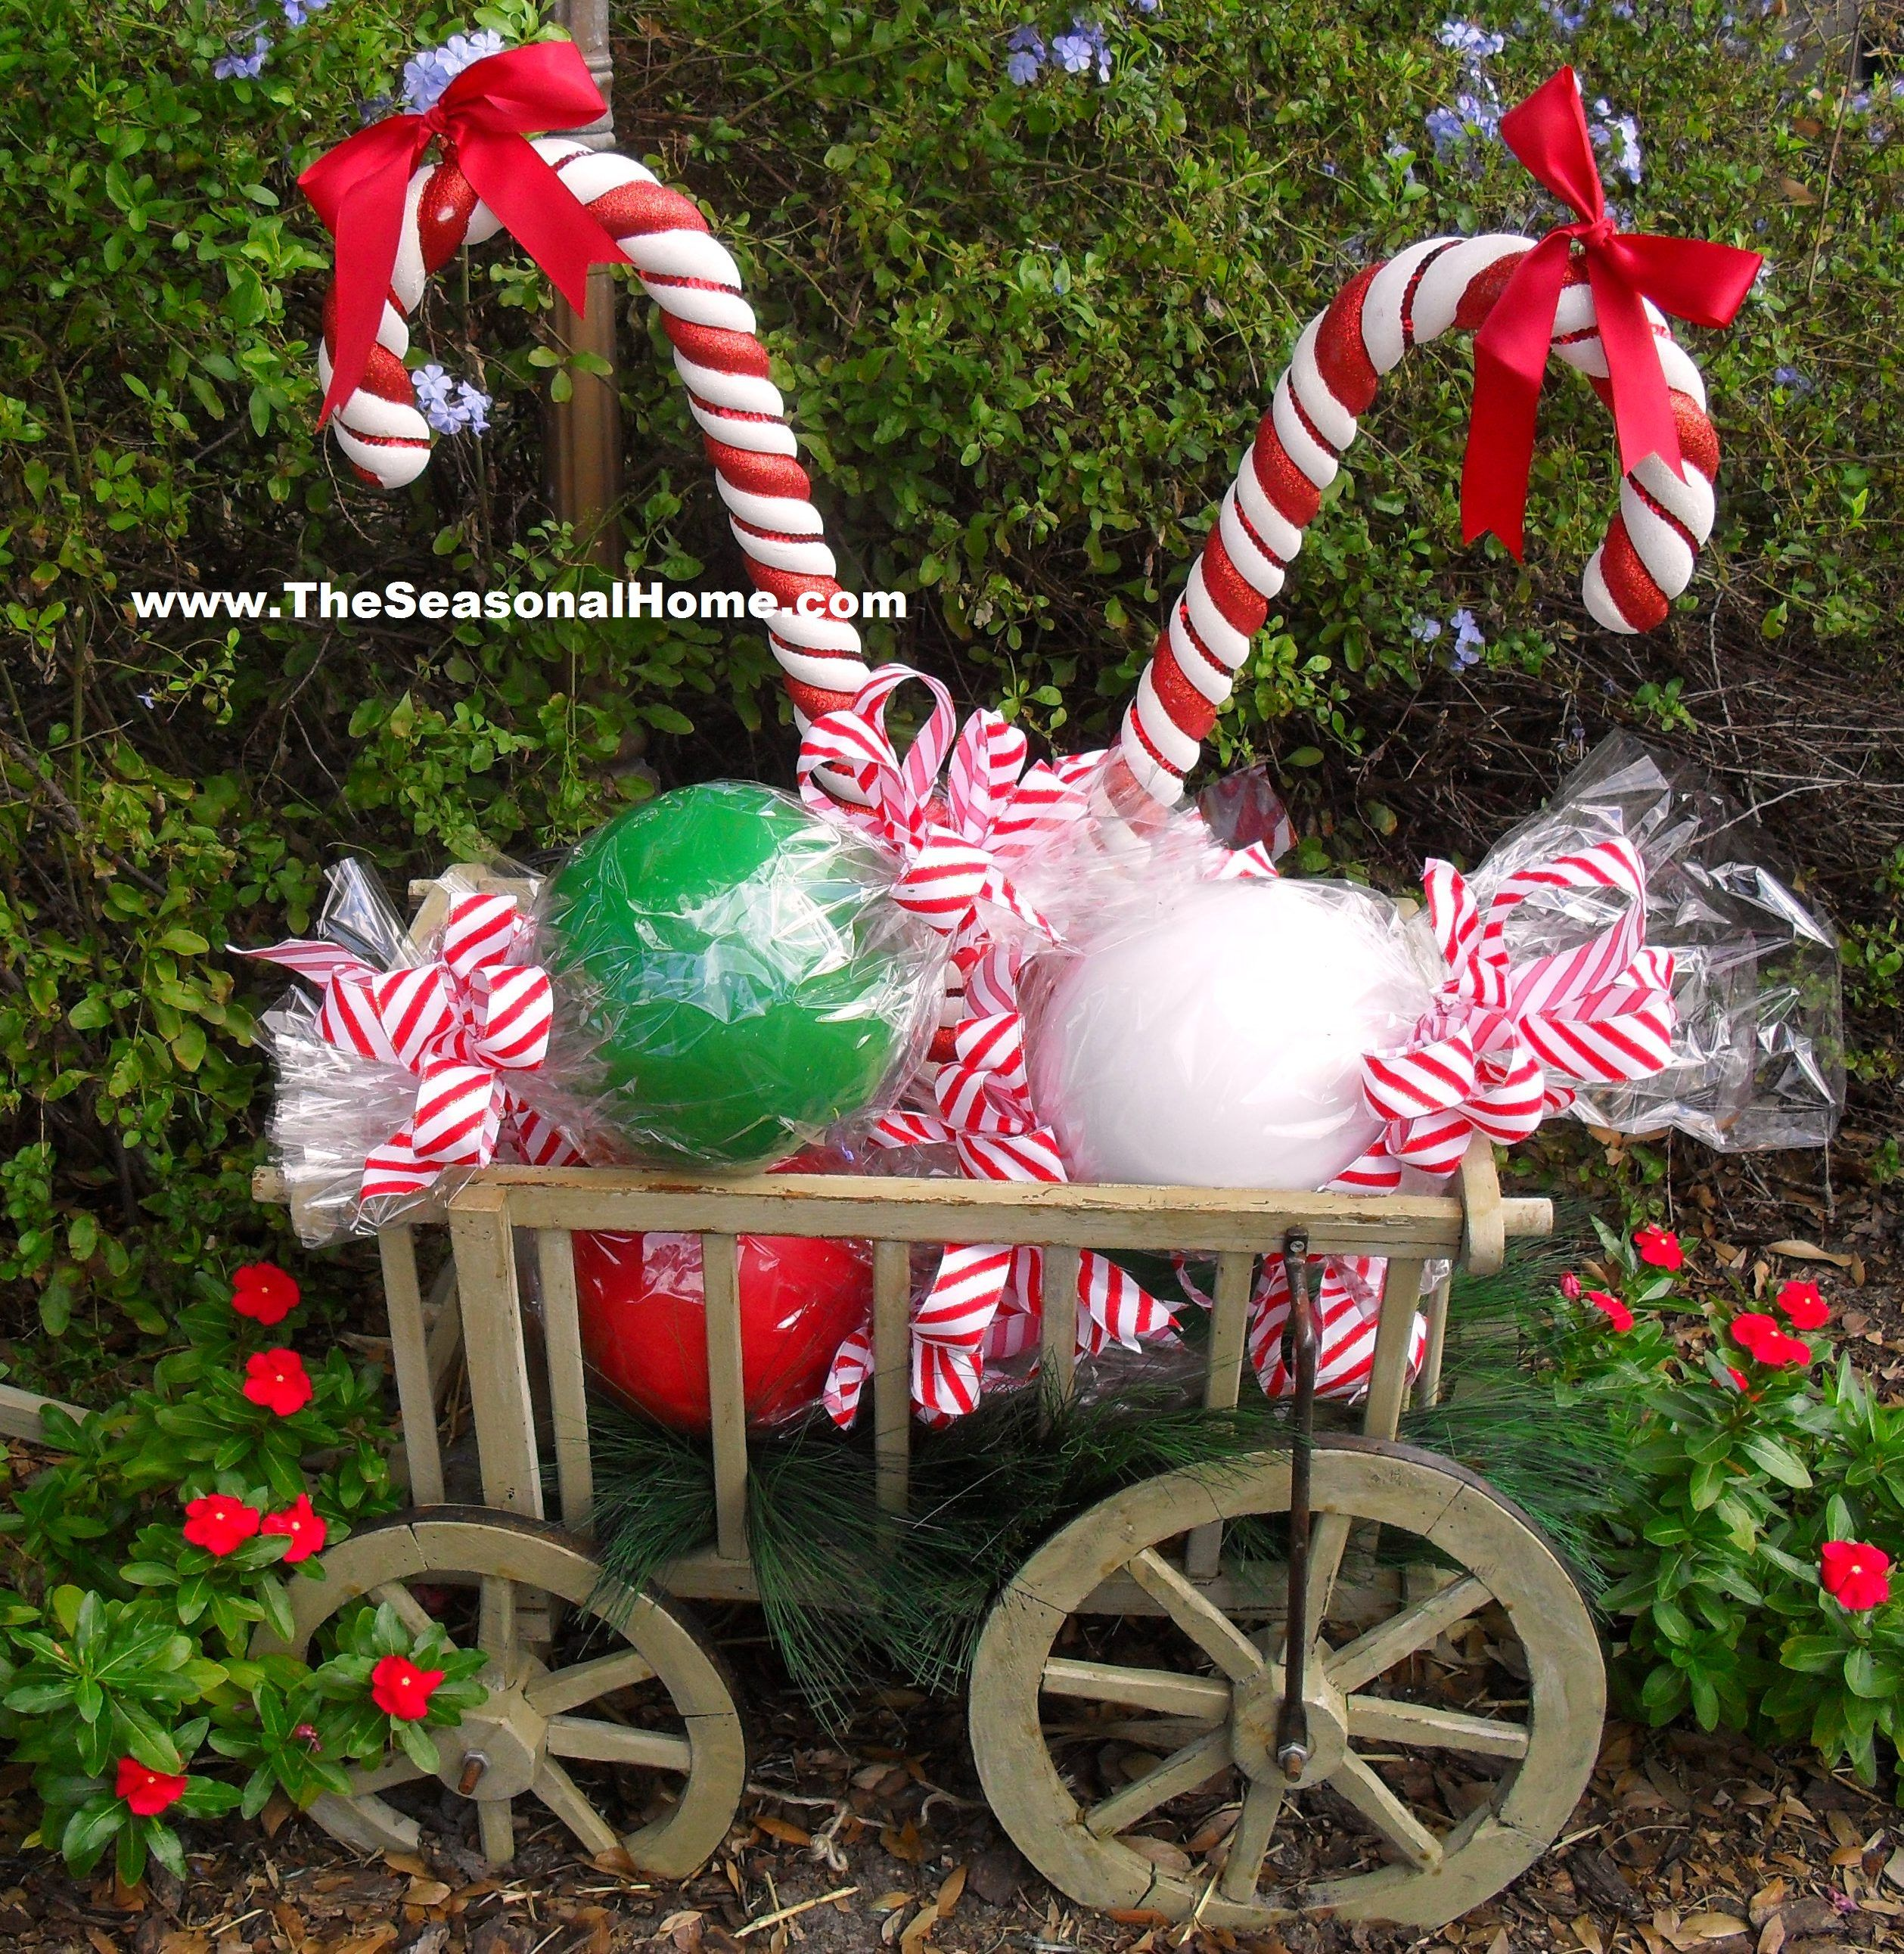 How to diy outdoor candy on the seasonal home blog for Christmas yard ornaments